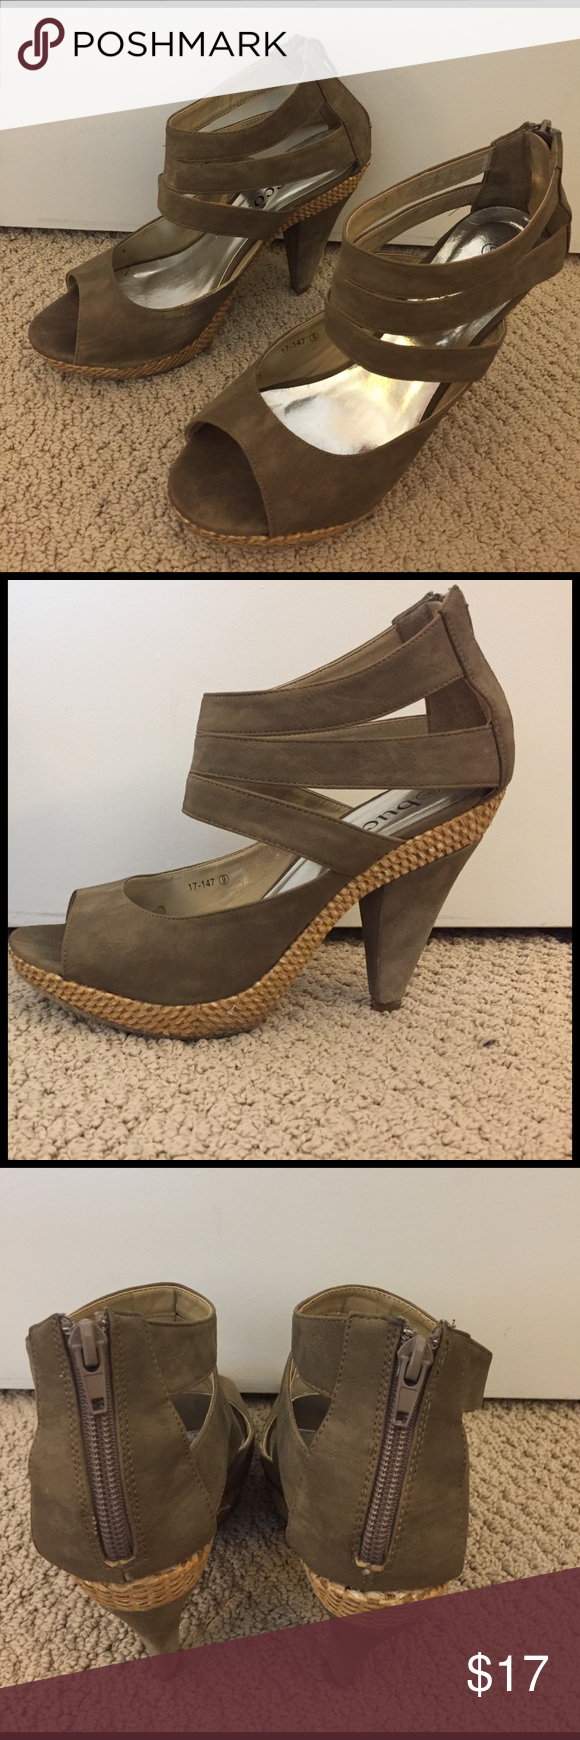 Dark olive and straw heels In original box. Bucco size 9 deep olive color. Zip back. Some wear on bottom as seen in photos. Bucco Shoes Heels